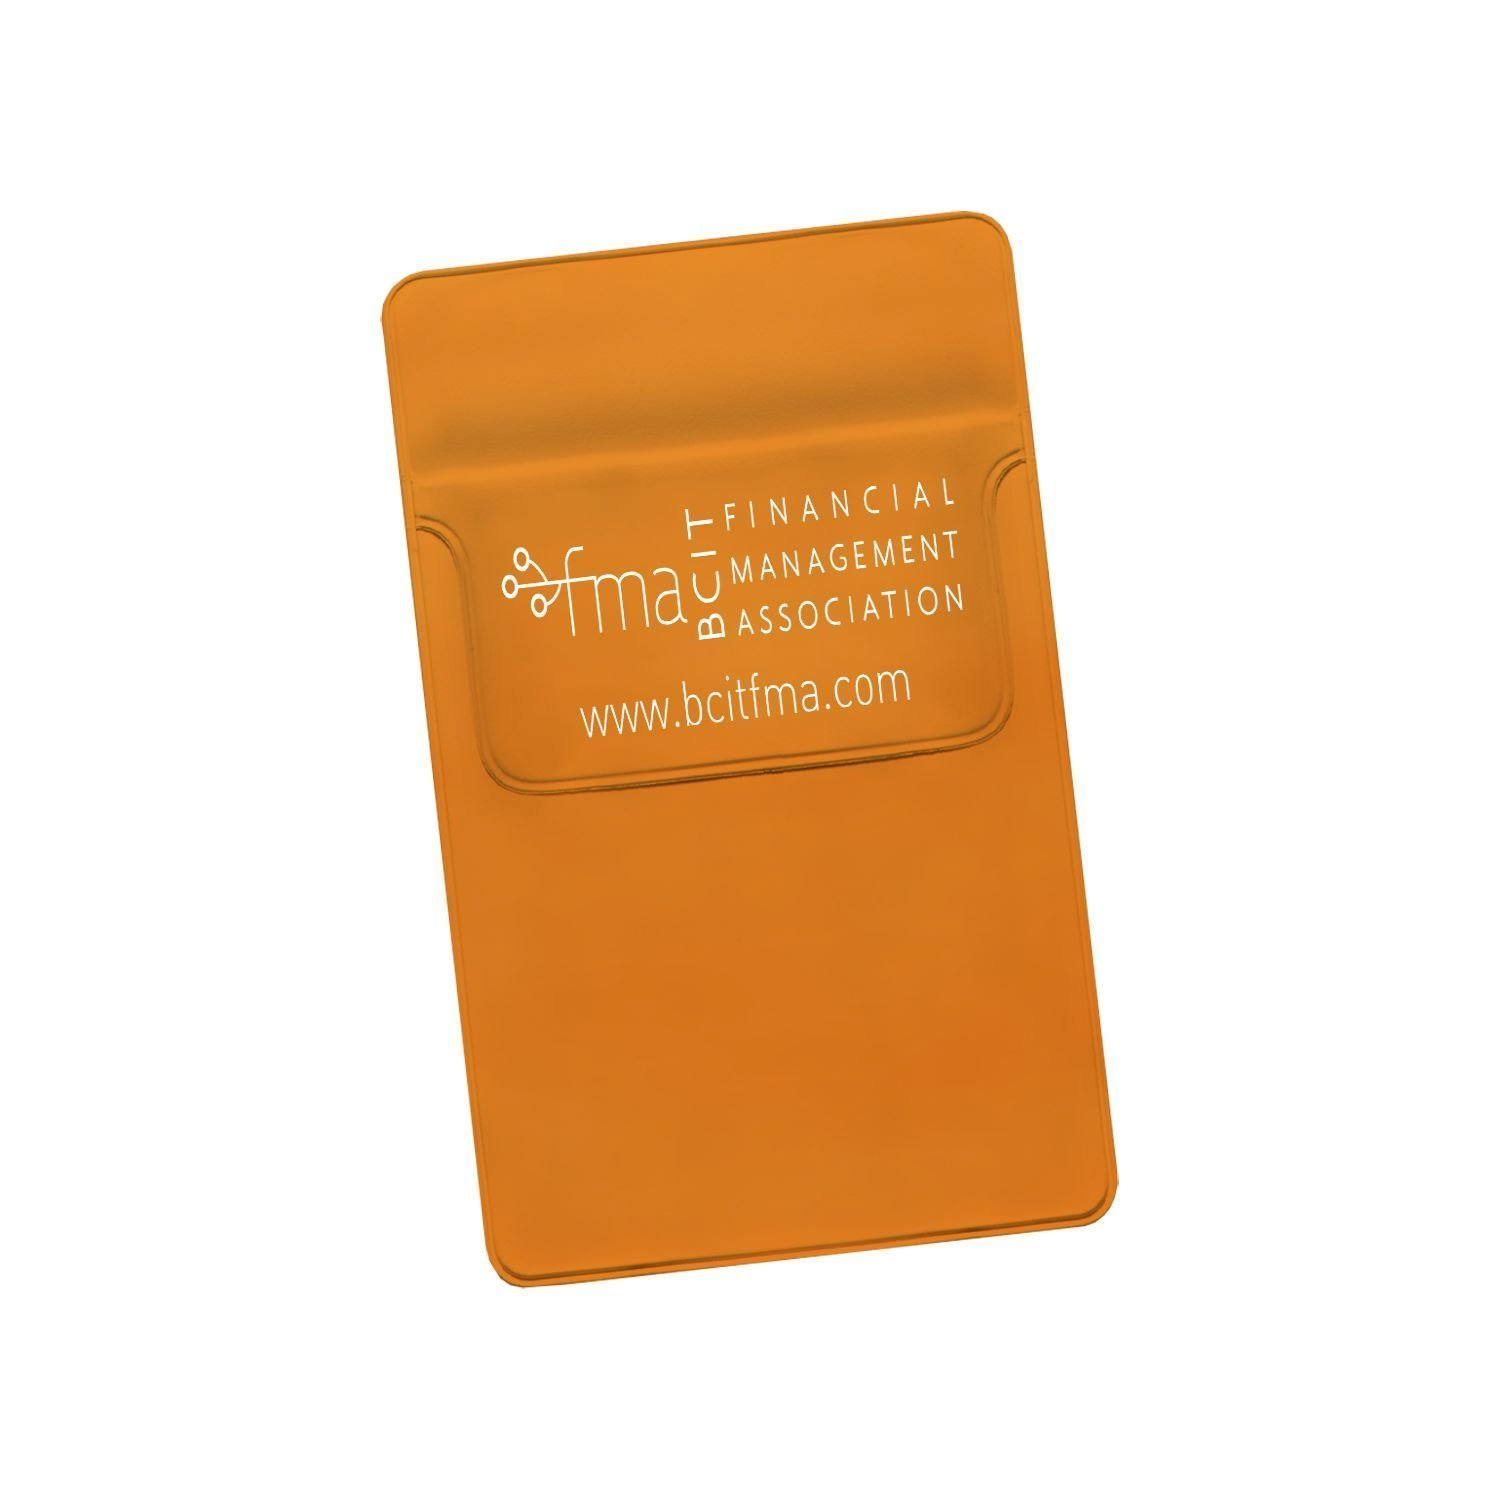 Promos With Imprint Personalized Pocket Protector 1 3/4 Flap - Translucent -1200 per Package- Bulk